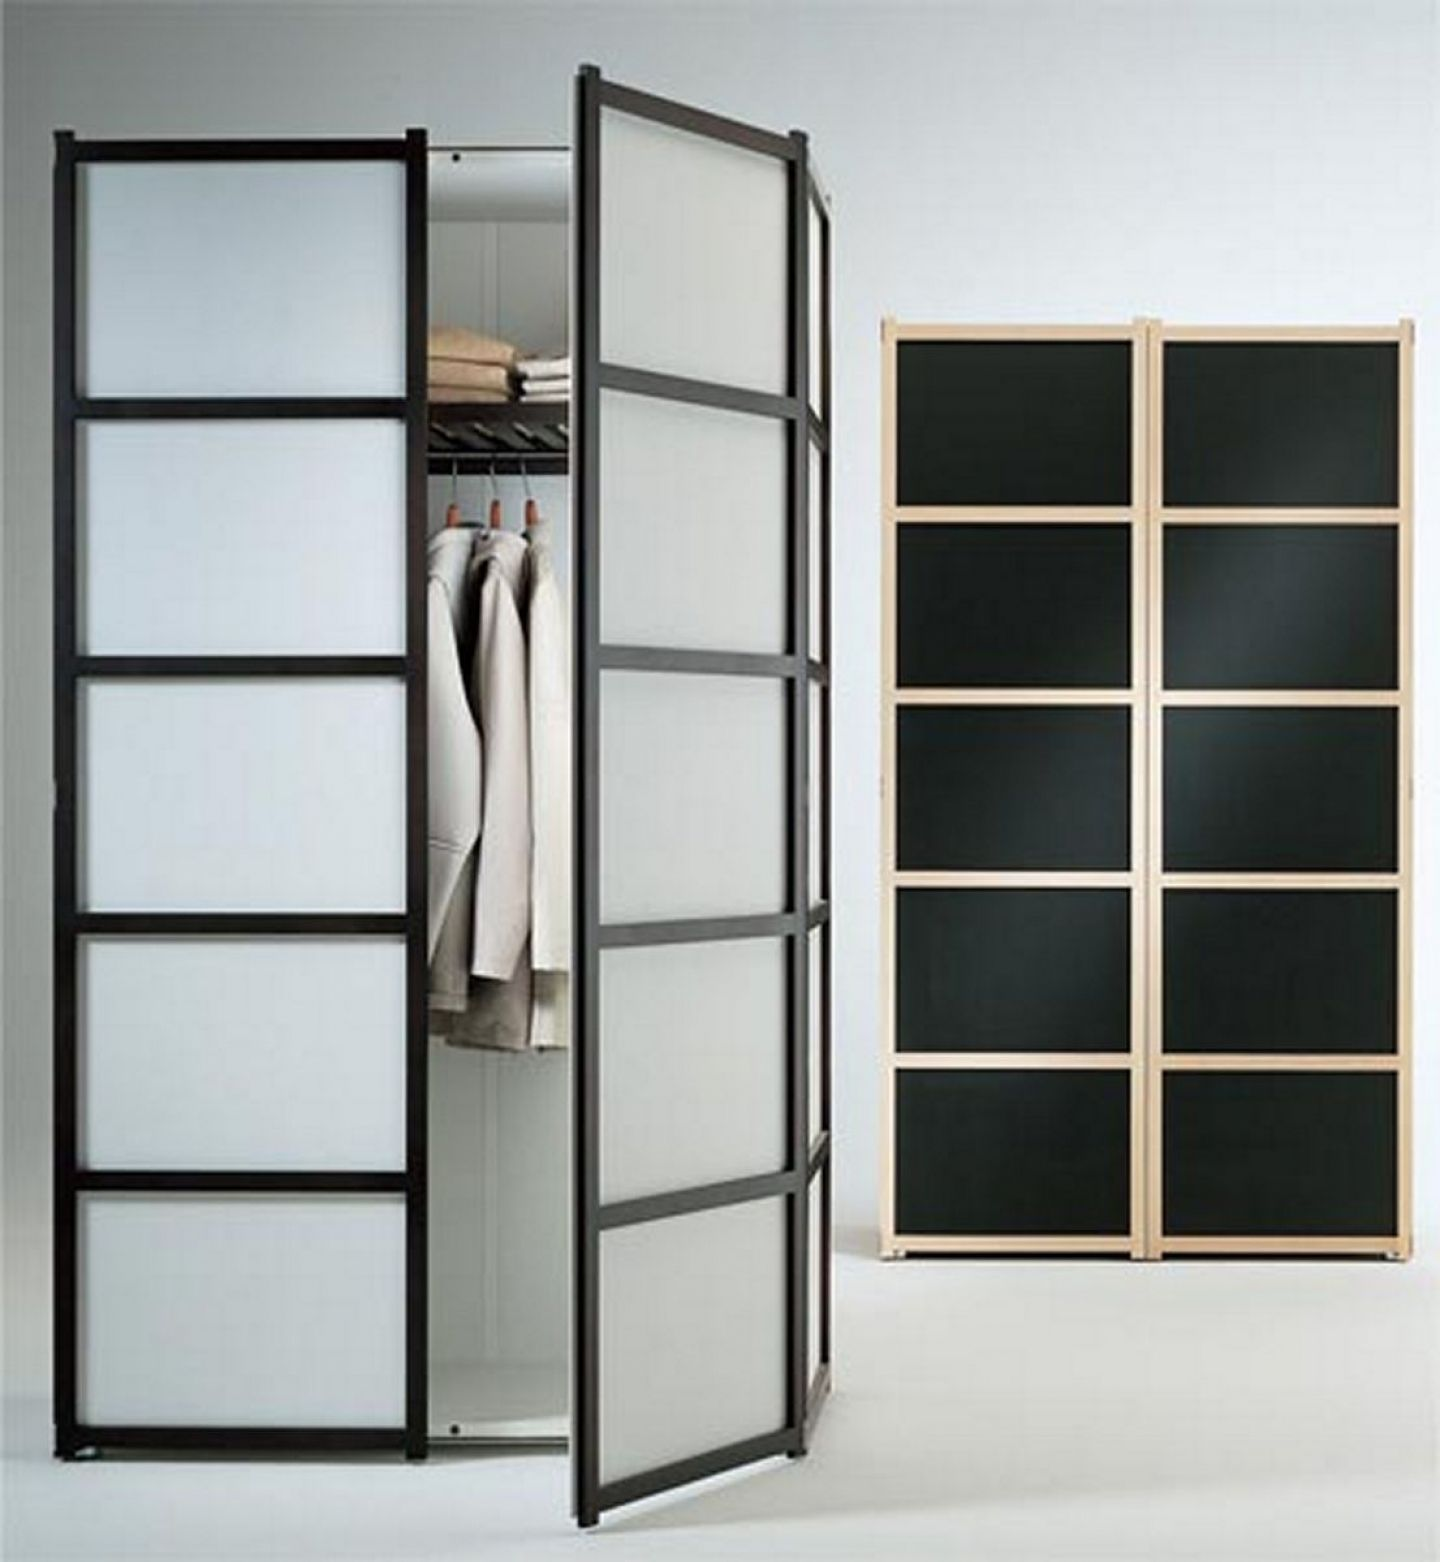 Fascinating Frozen Glass Double Swing Door Ikea Wardrobe For Clothes Organizers In White Room Furnishing Ideas